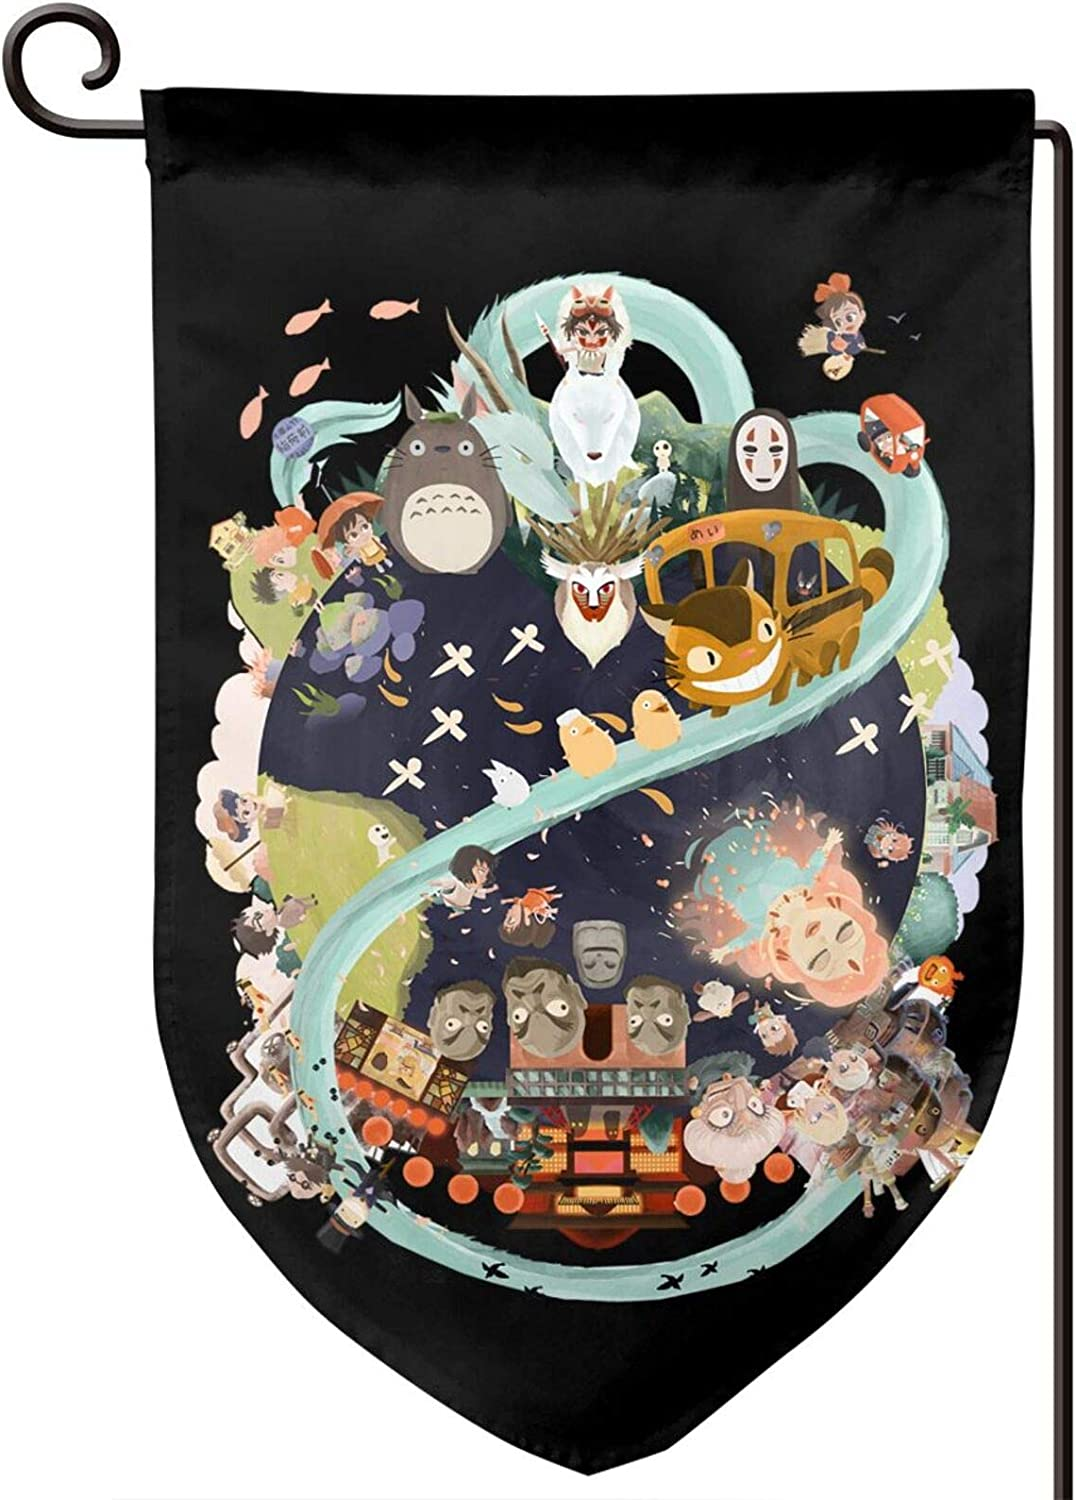 Yhdsaihvnbs Studio Ghibli Seasonal Outdoor Garden Flag, Double Sided Yard Flag, Holiday Spring Decorations for Home Yard Outdoor, Decorative Sign, 12.5 X 18 Inch